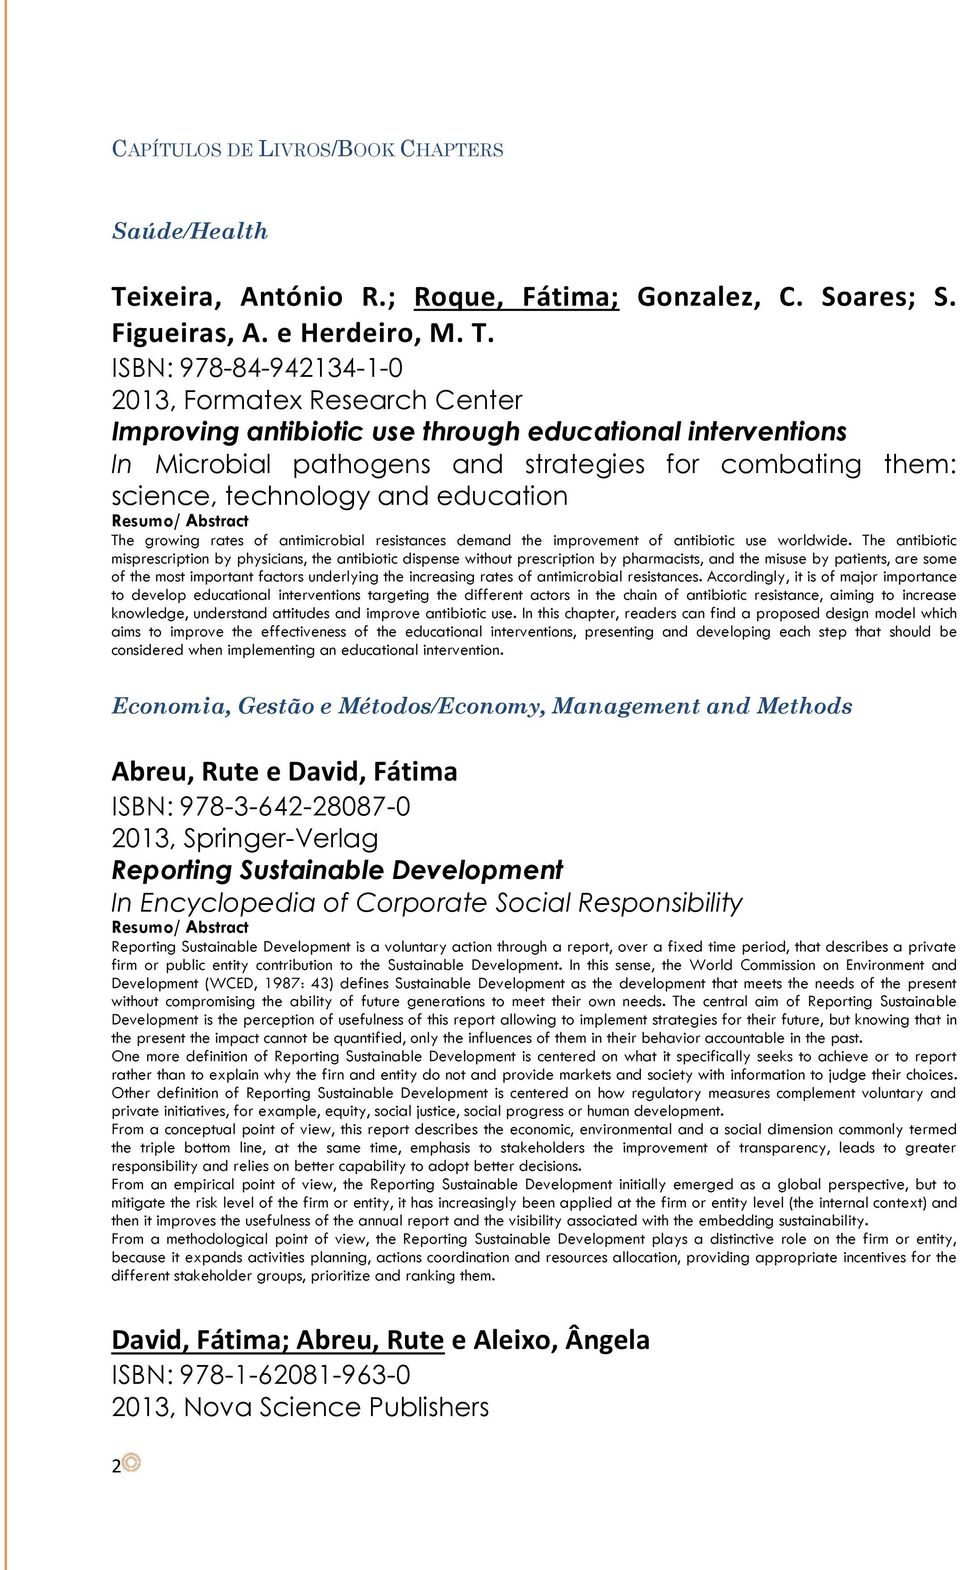 ISBN: 978-84-942134-1-0 2013, Formatex Research Center Improving antibiotic use through educational interventions In Microbial pathogens and strategies for combating them: science, technology and